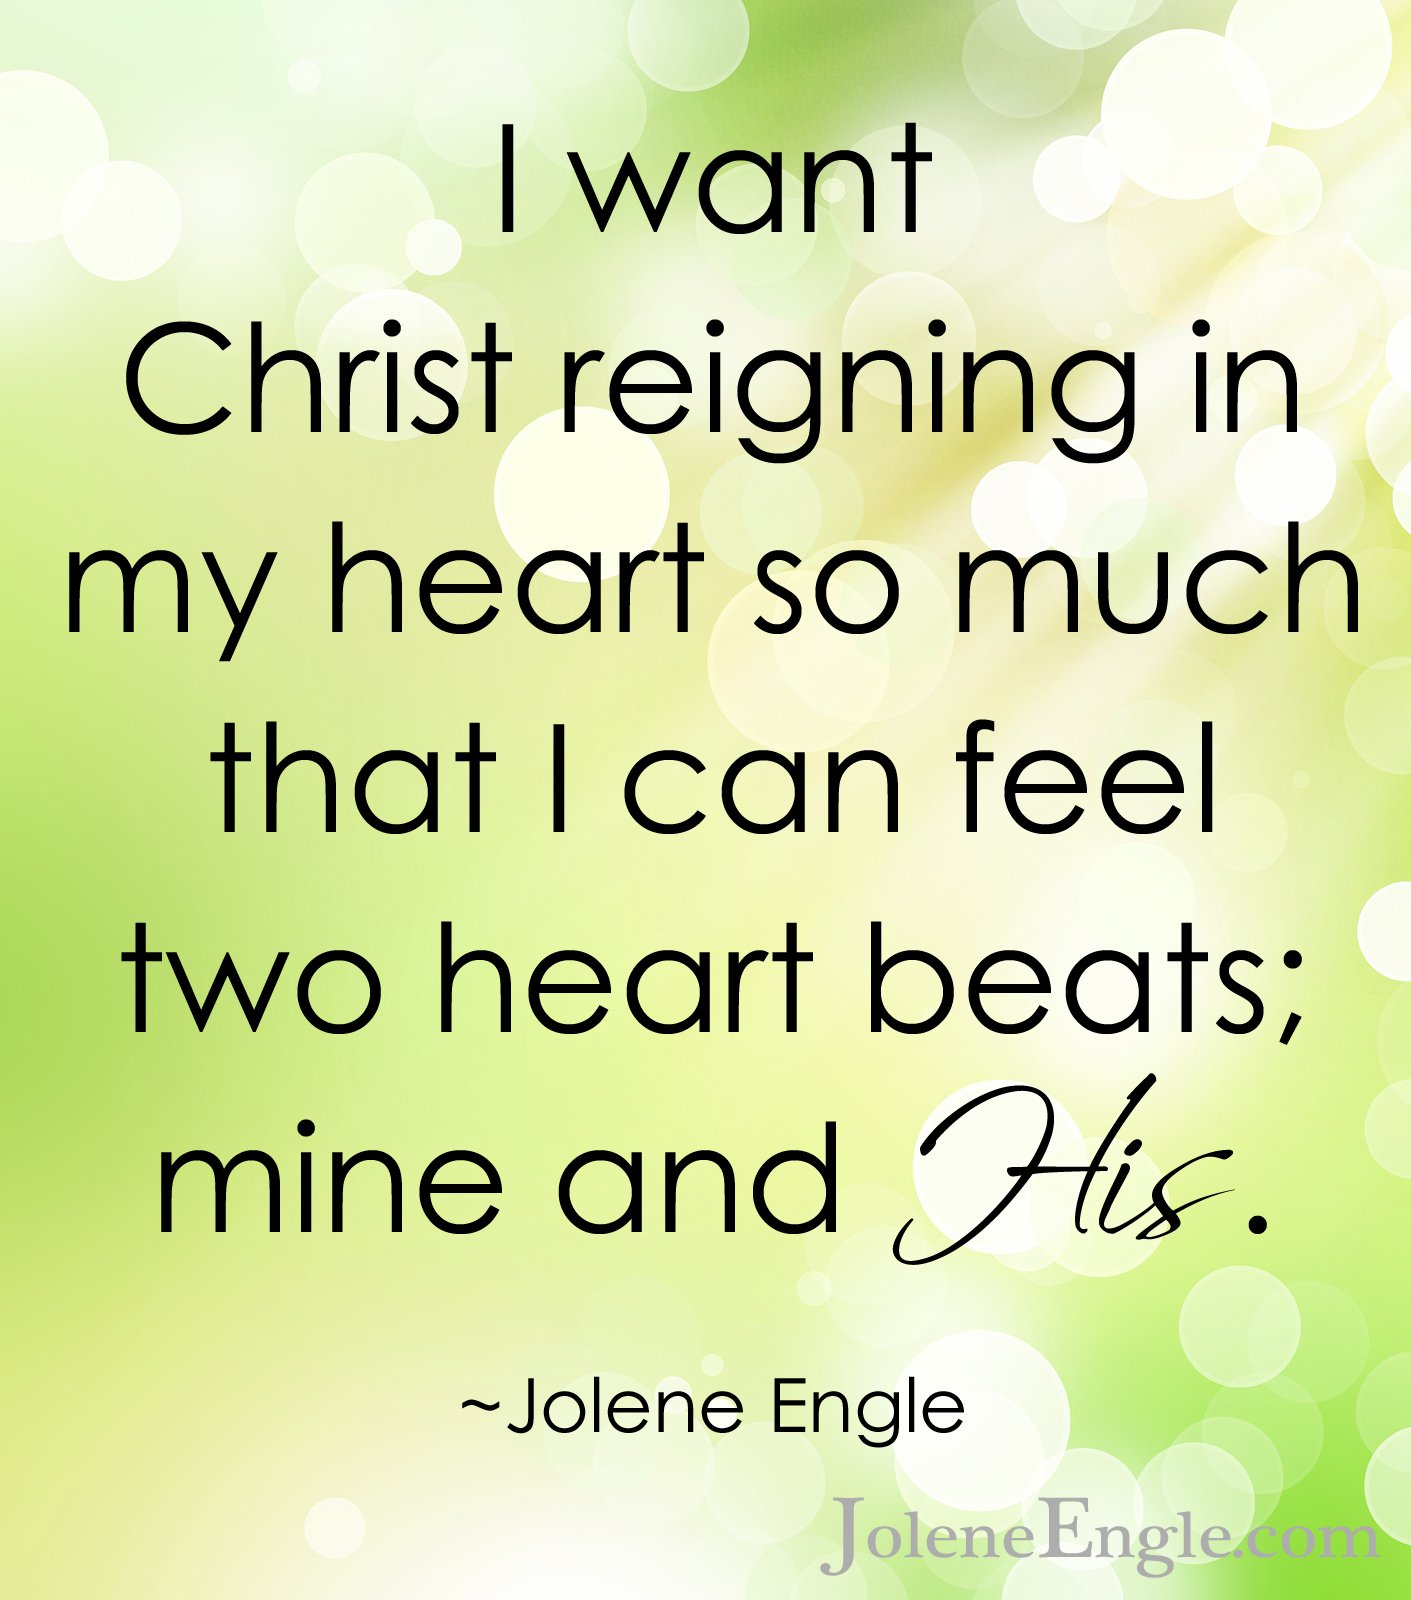 christ reigning in my heart copy